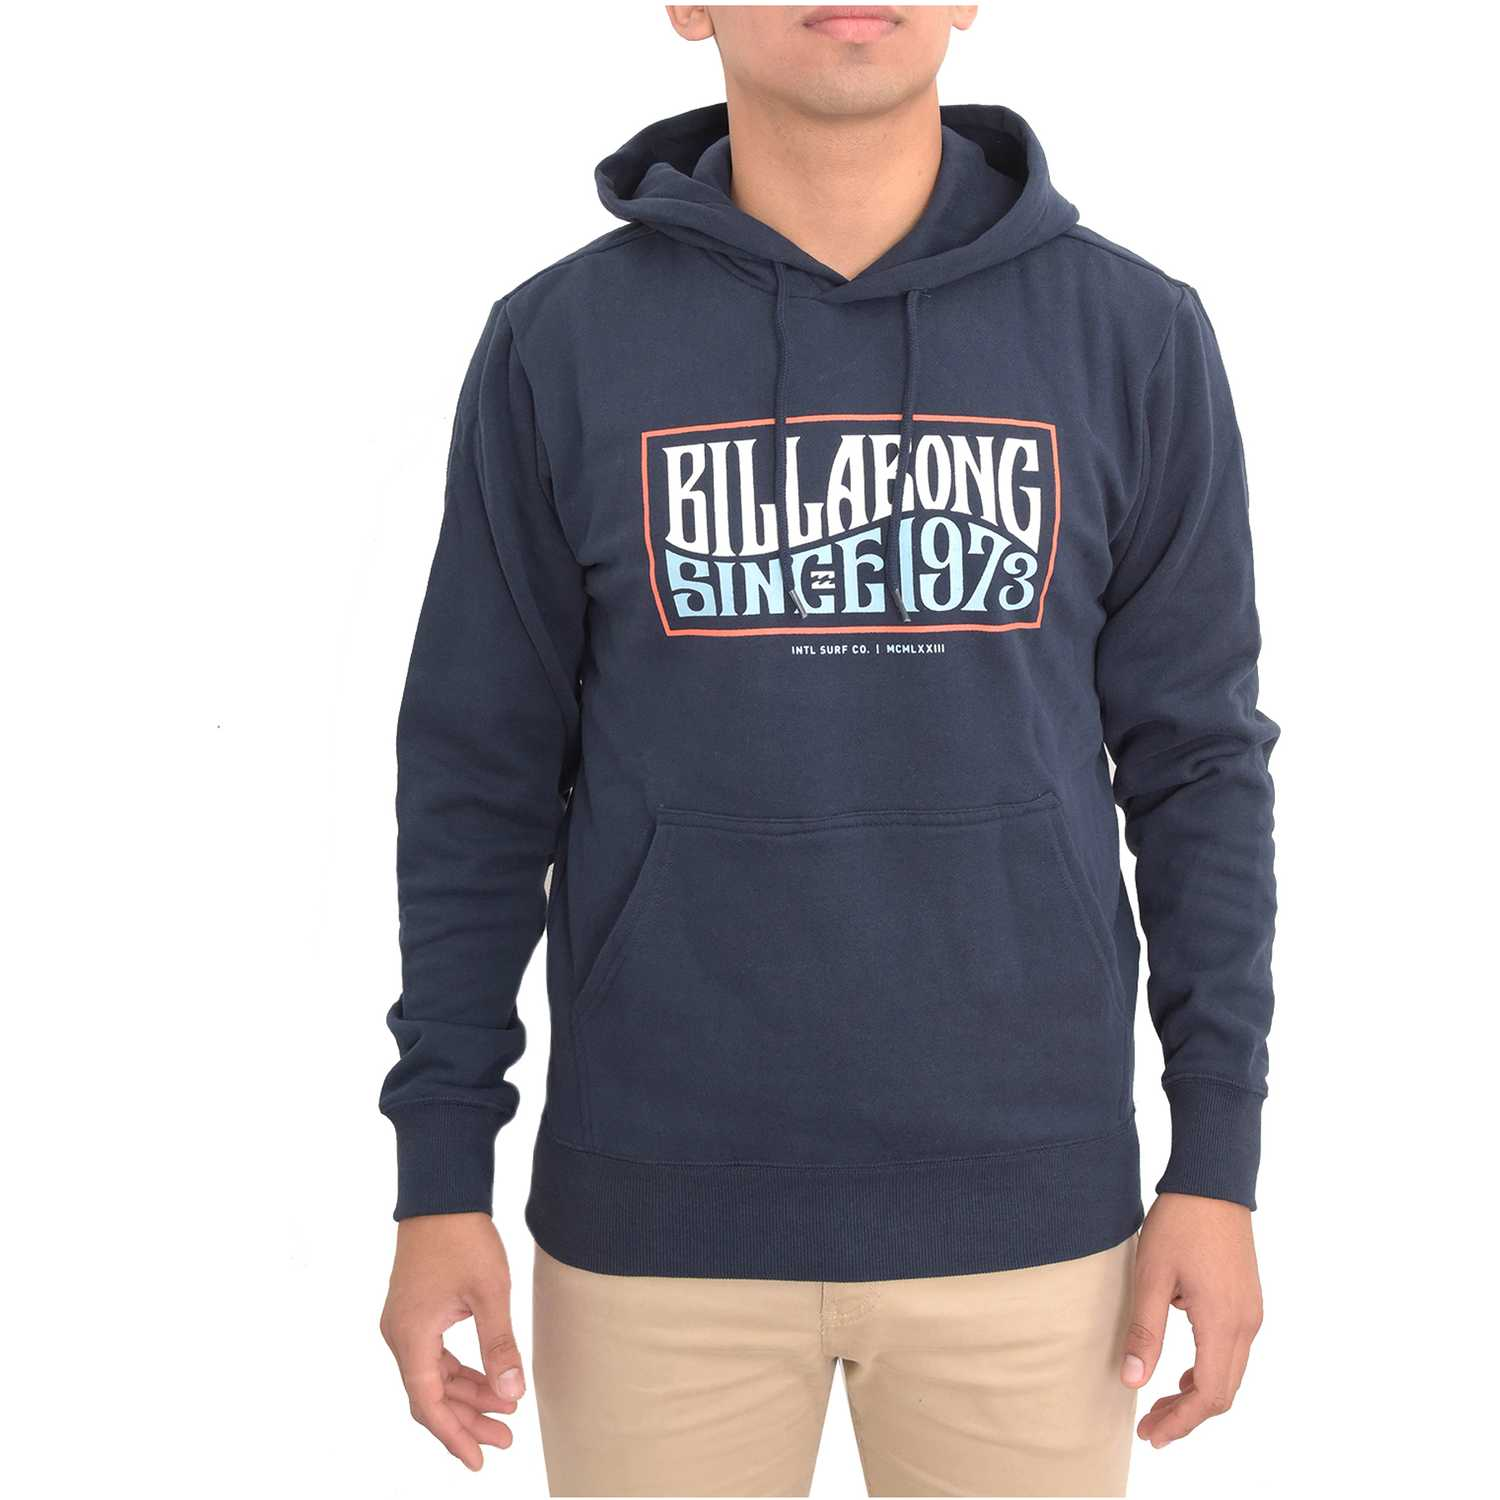 Polera de Hombre Billabong Navy wave days po hdy